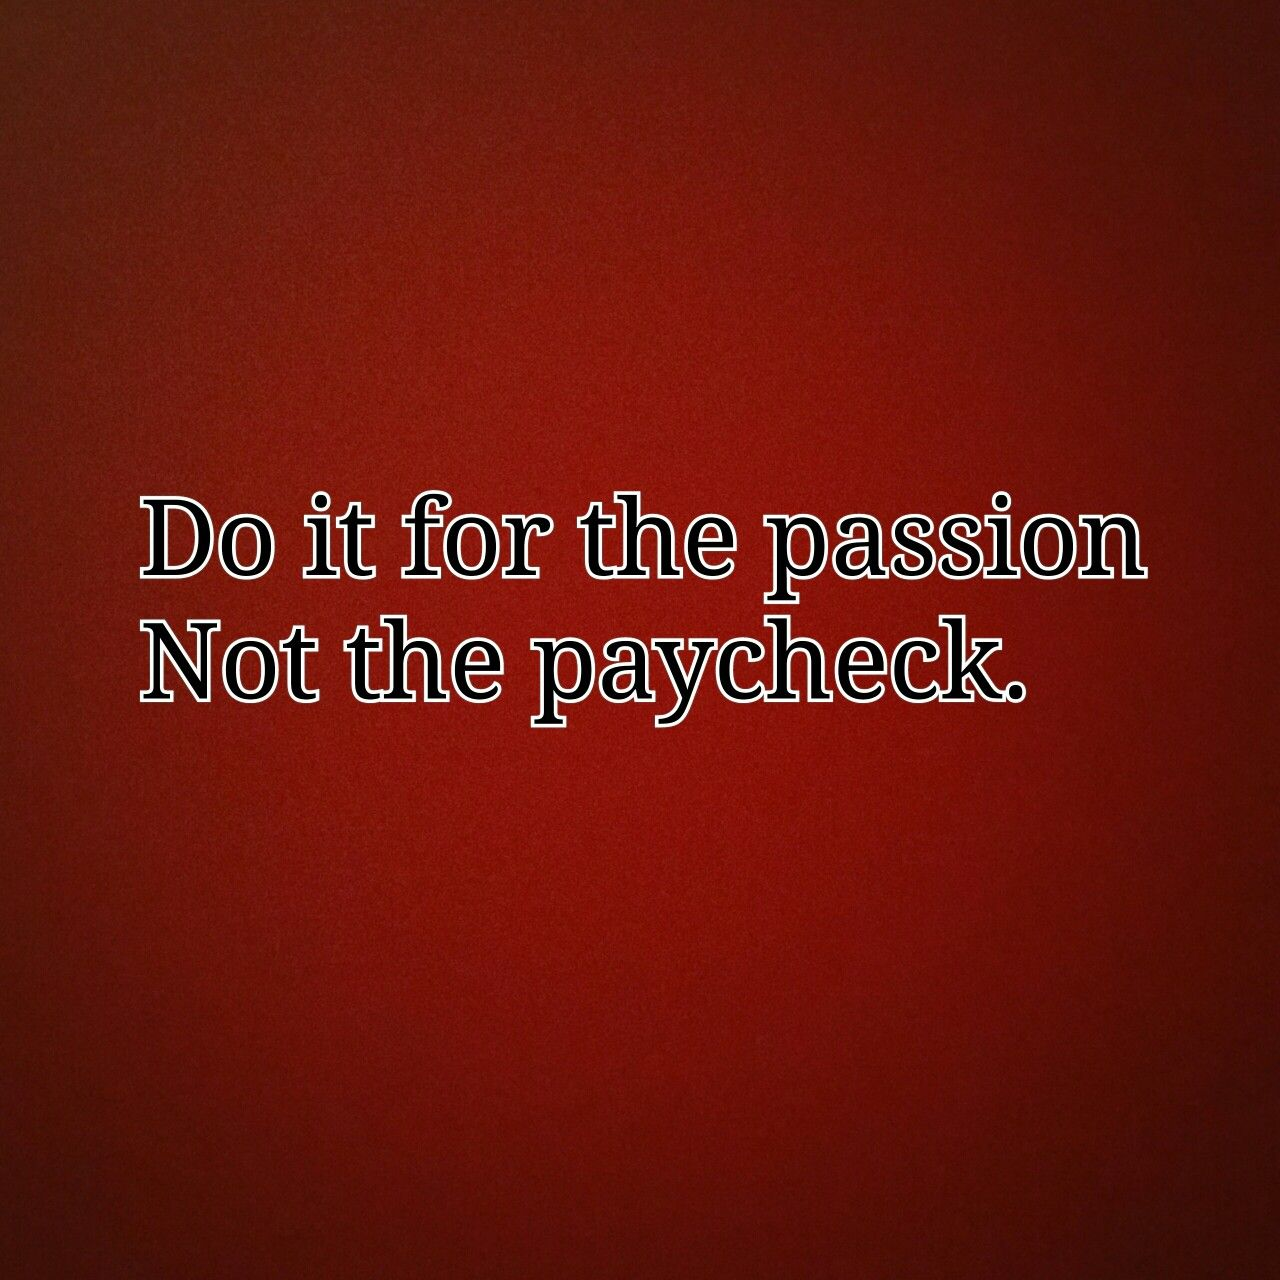 Do it for the #passion not the #paycheck